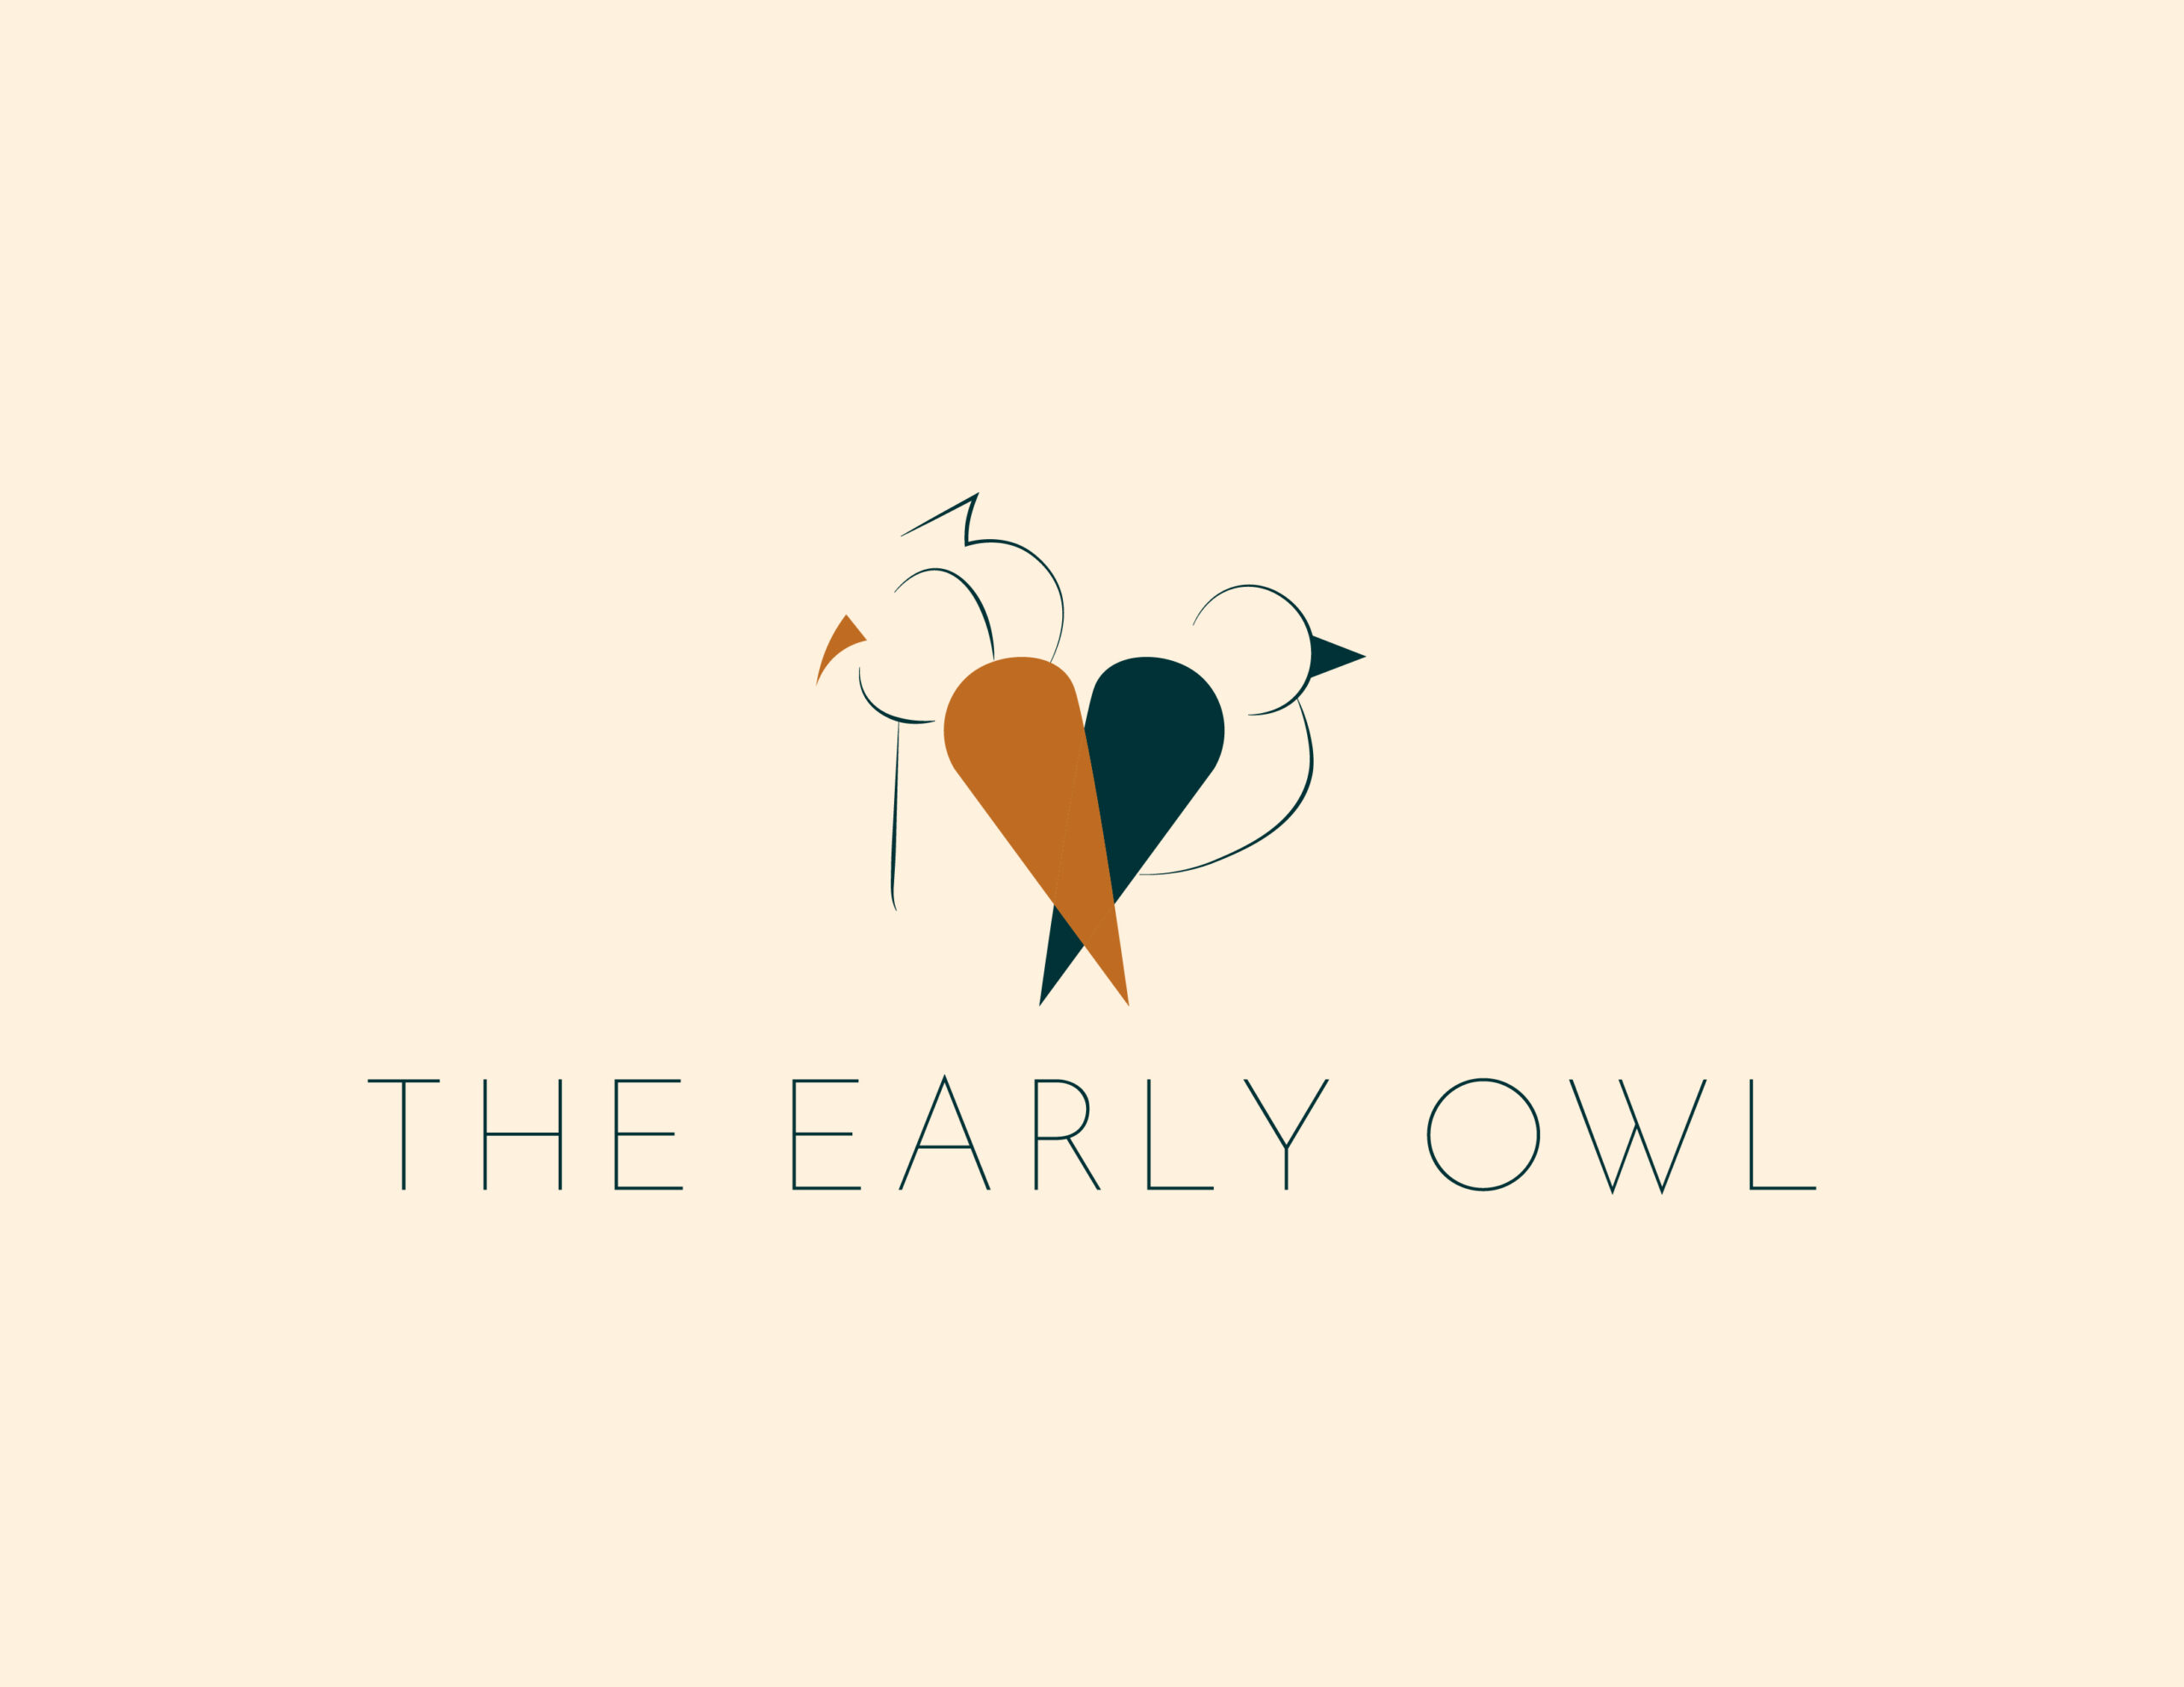 The Early Owl